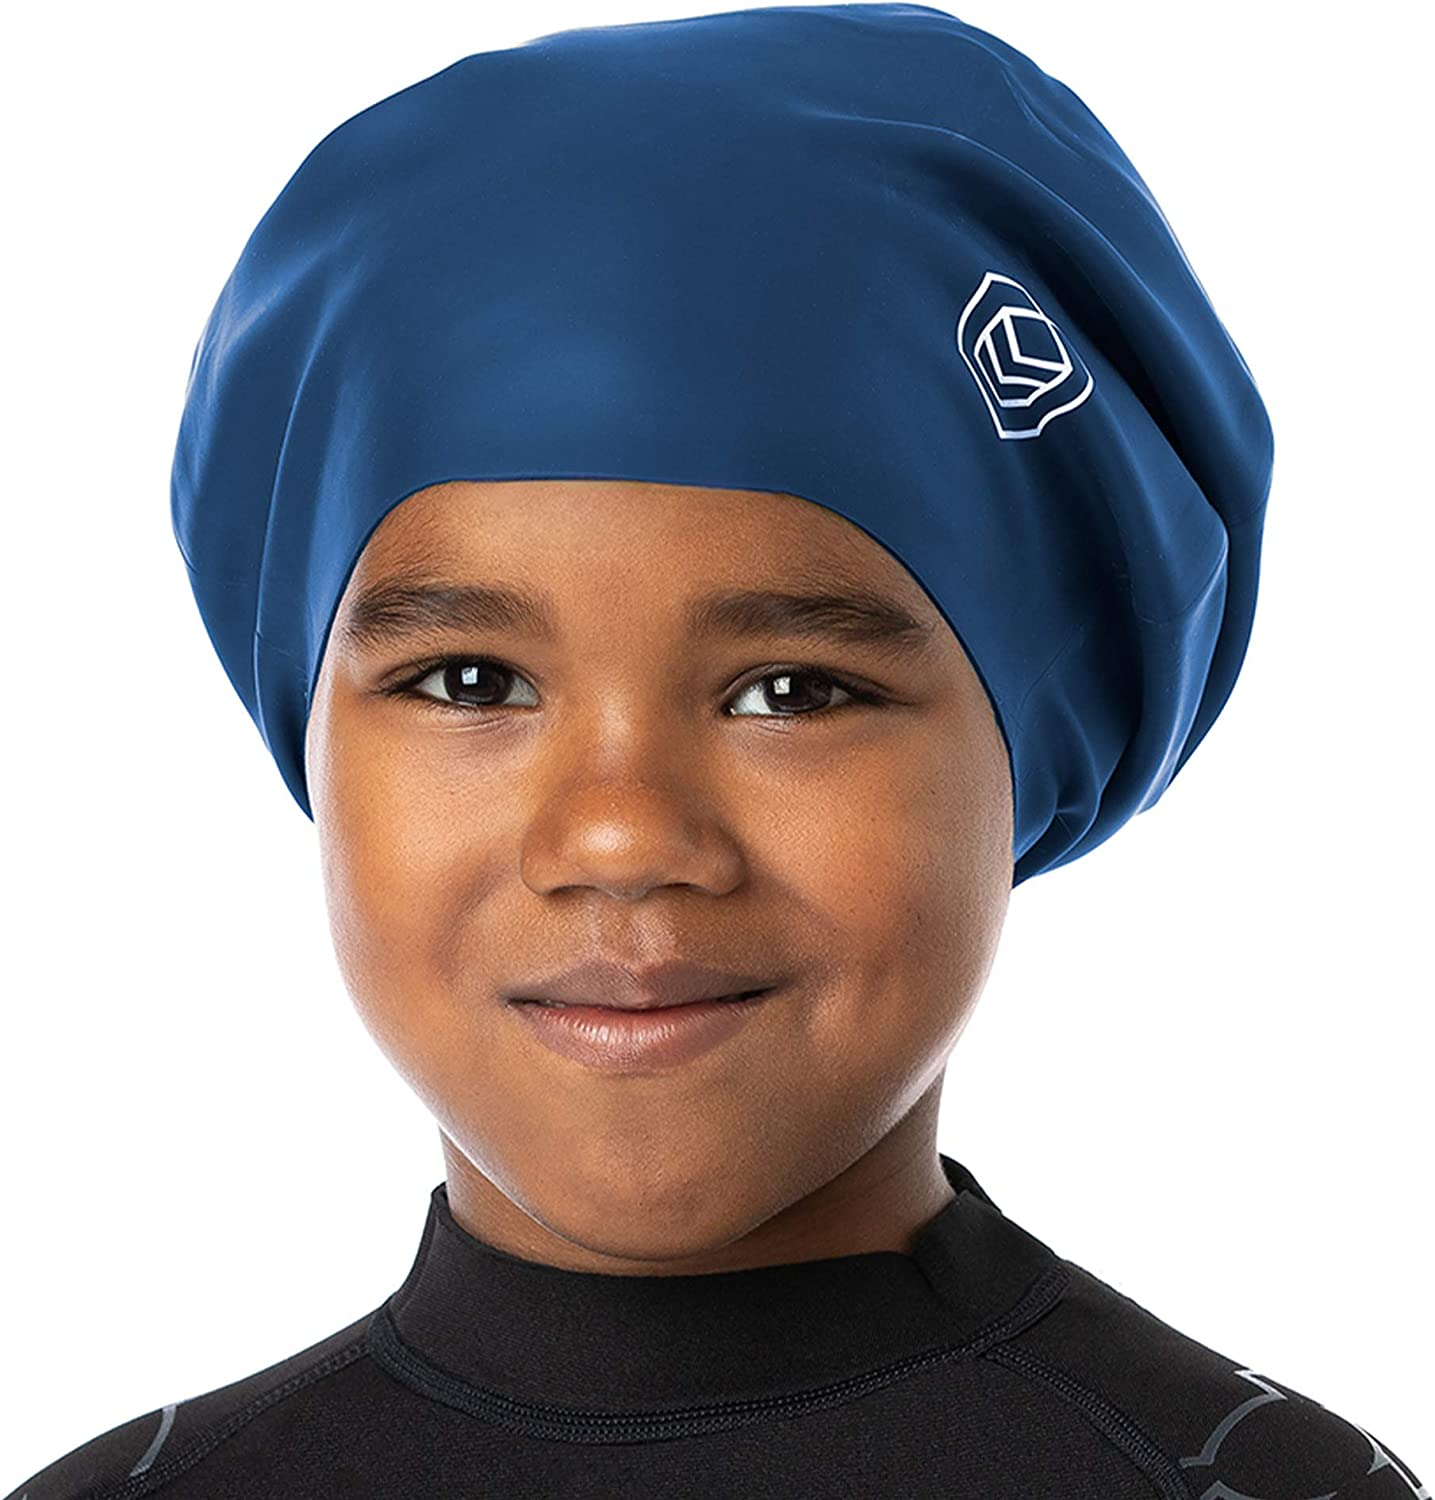 Weaves SOUL CAP JR Silicone Large Swimming Cap for Children Braids Designed for Long Hair Curls /& Afros Dreadlocks Hair Extensions